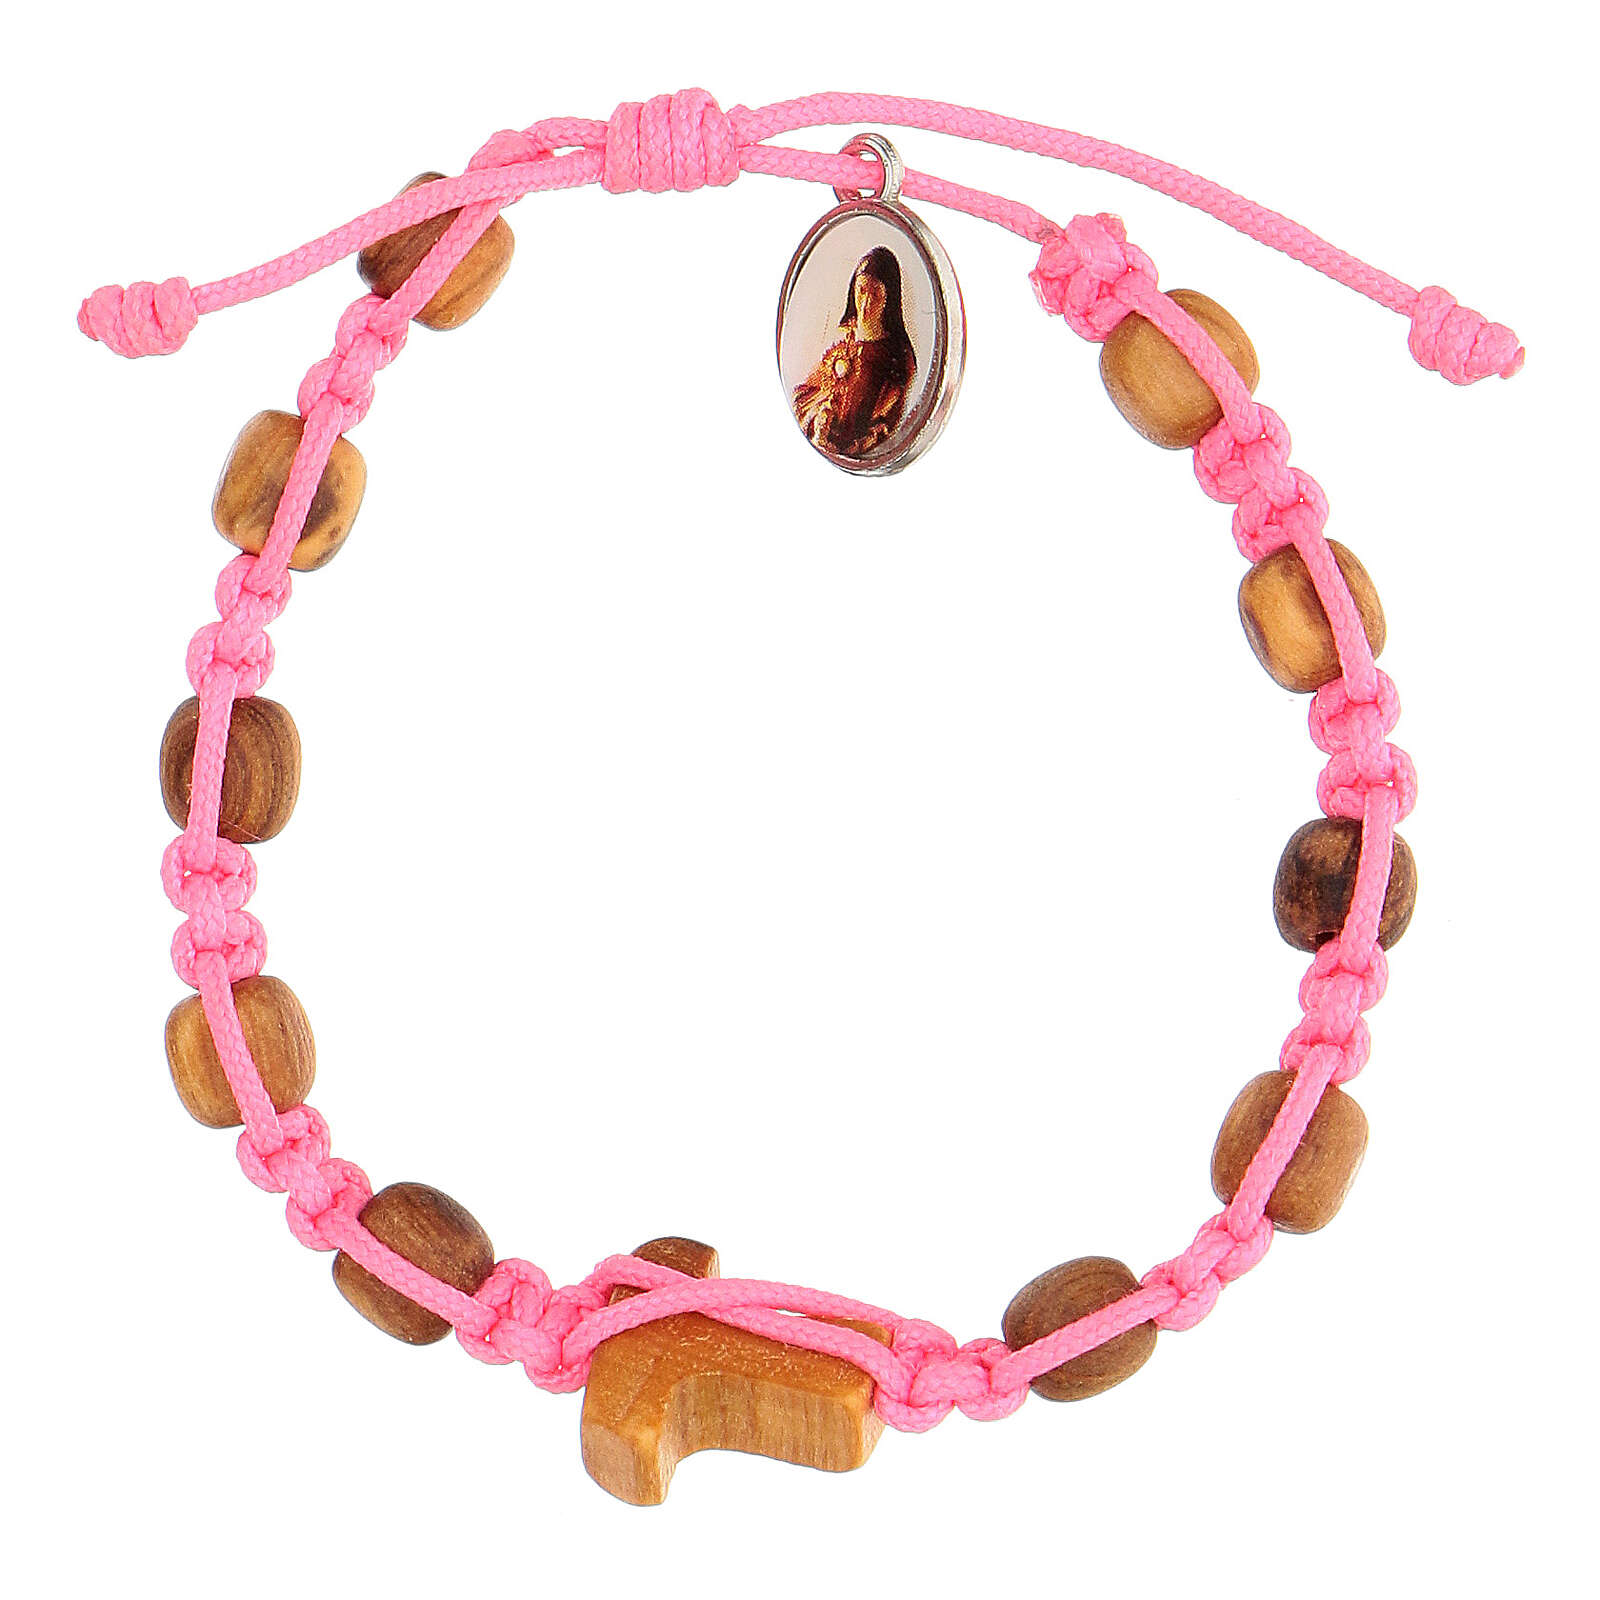 Bracelet Medjugorje grains ronds enfant corde rose 4